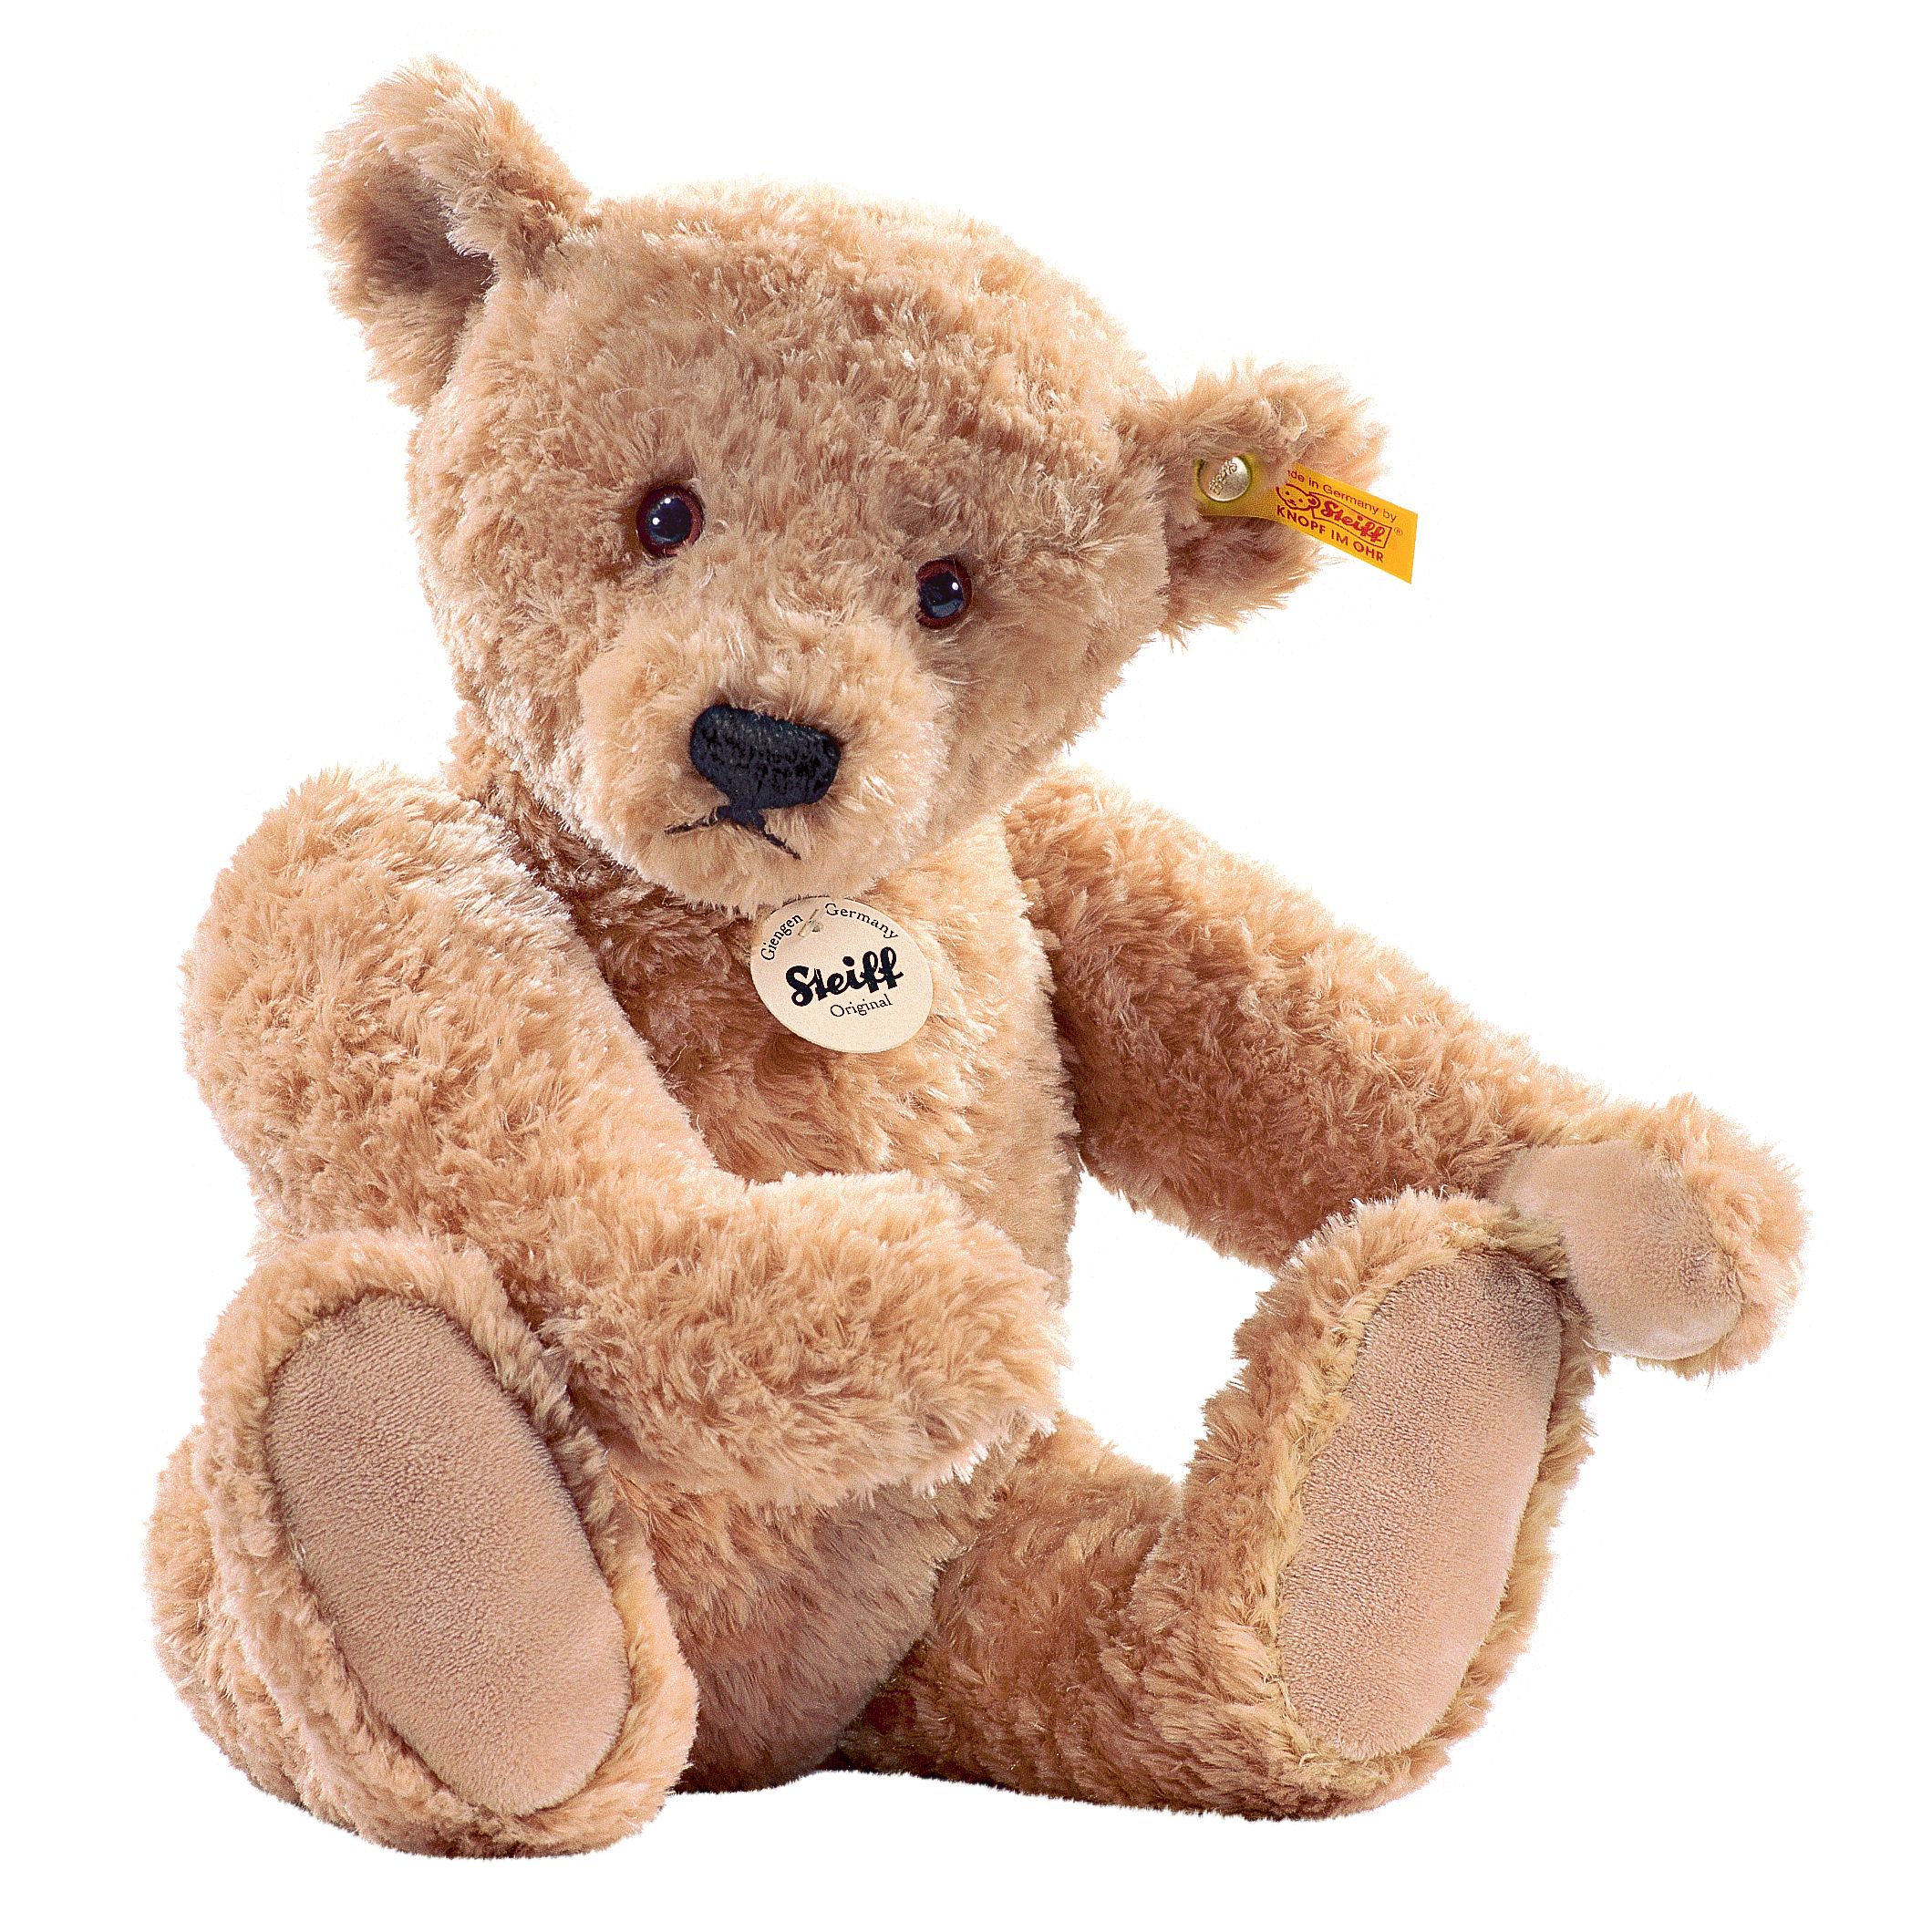 Steiff Steiff Elmar Teddy Bear Soft Toy, Small